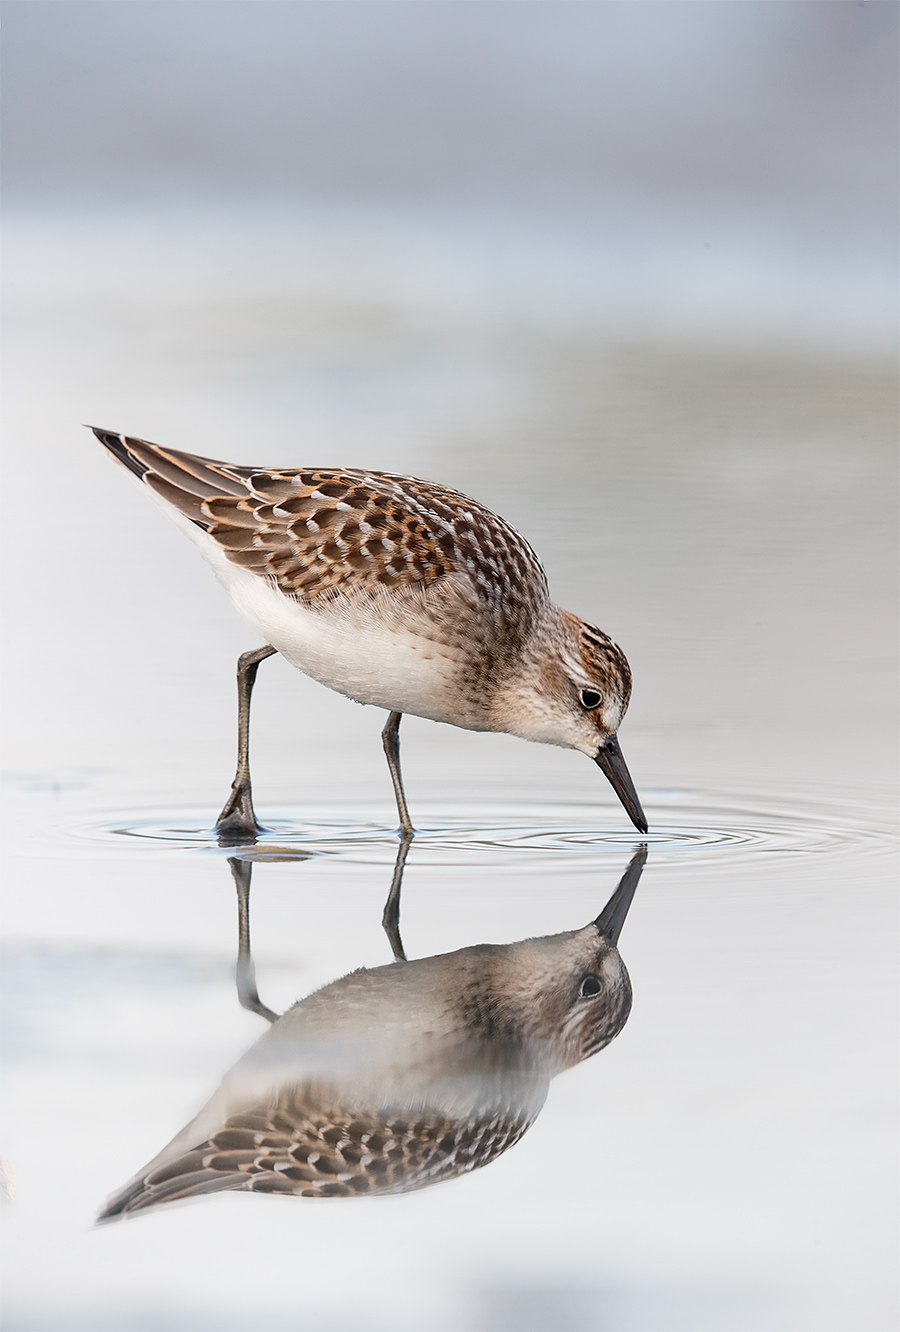 semipalmated-sandpiper-juvenile-_y7o5364-east-pond-jamaica-bay-wr-queens-ny